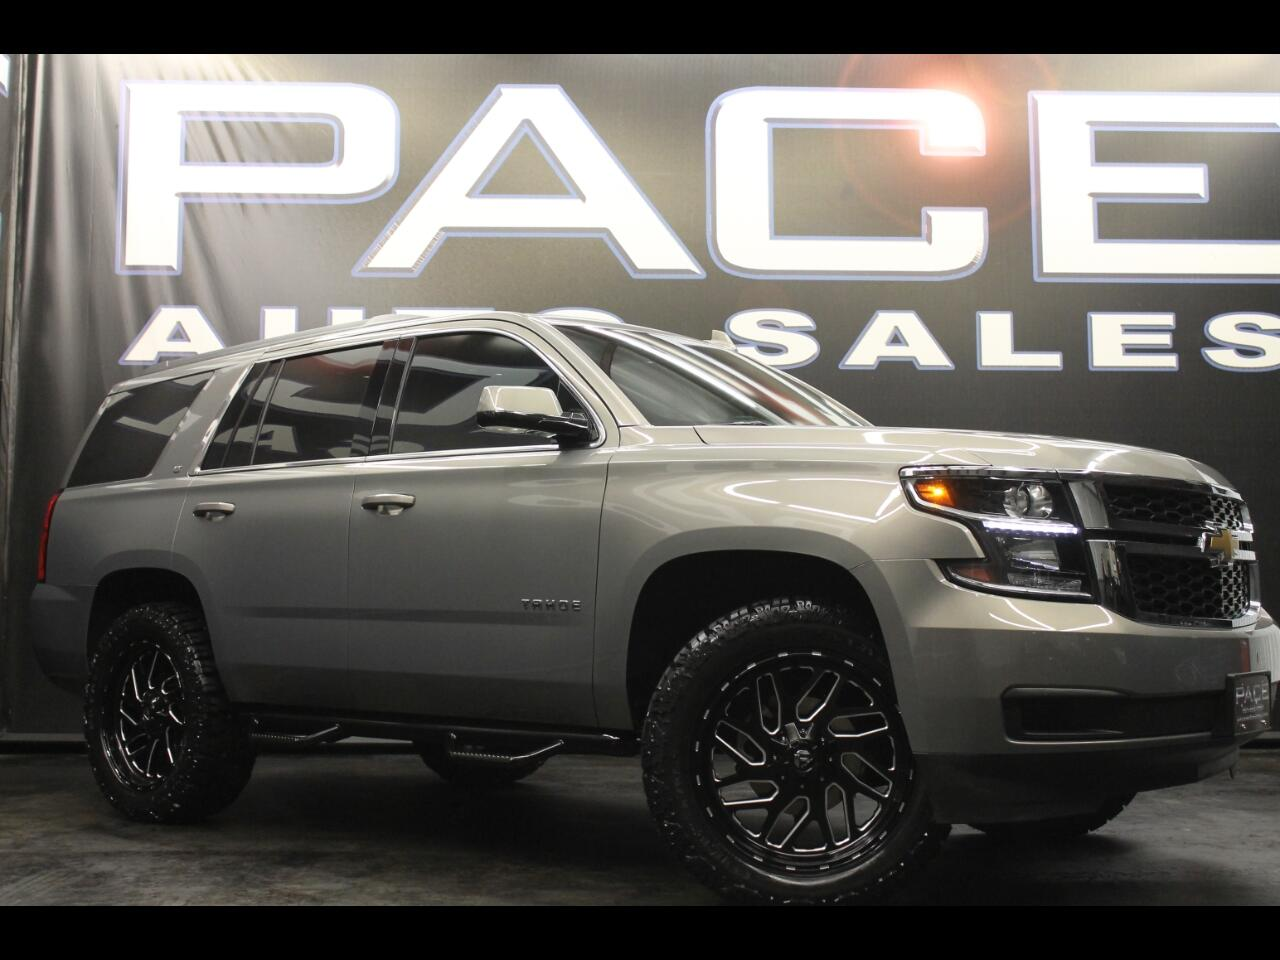 2018 Chevrolet Tahoe 4WD Custom Leveled